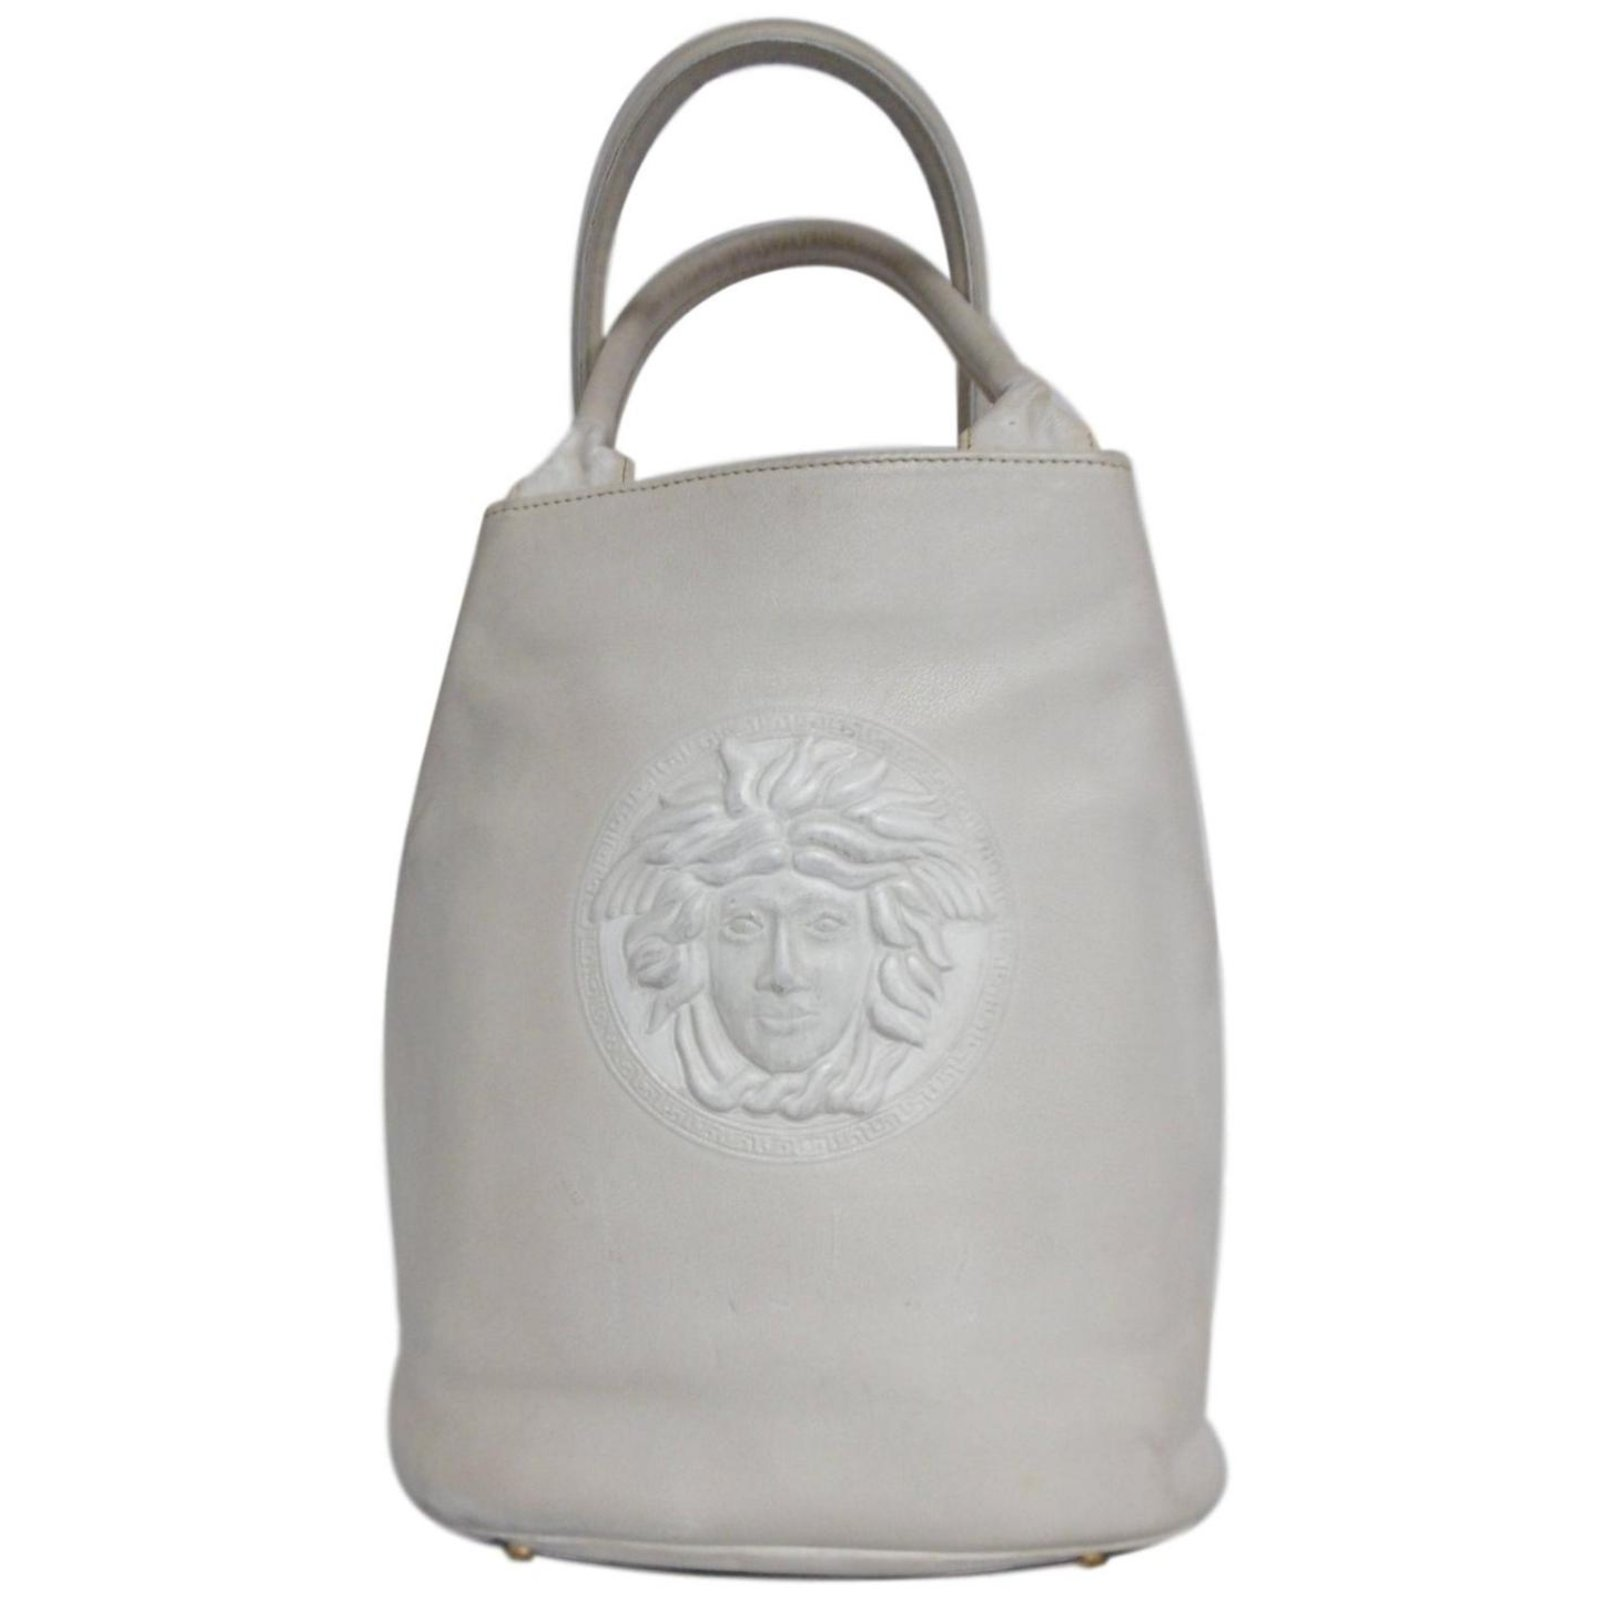 8f6326ec05 Gianni Versace Medusa Bucket Bag Handbags Leather White ref.78928 ...